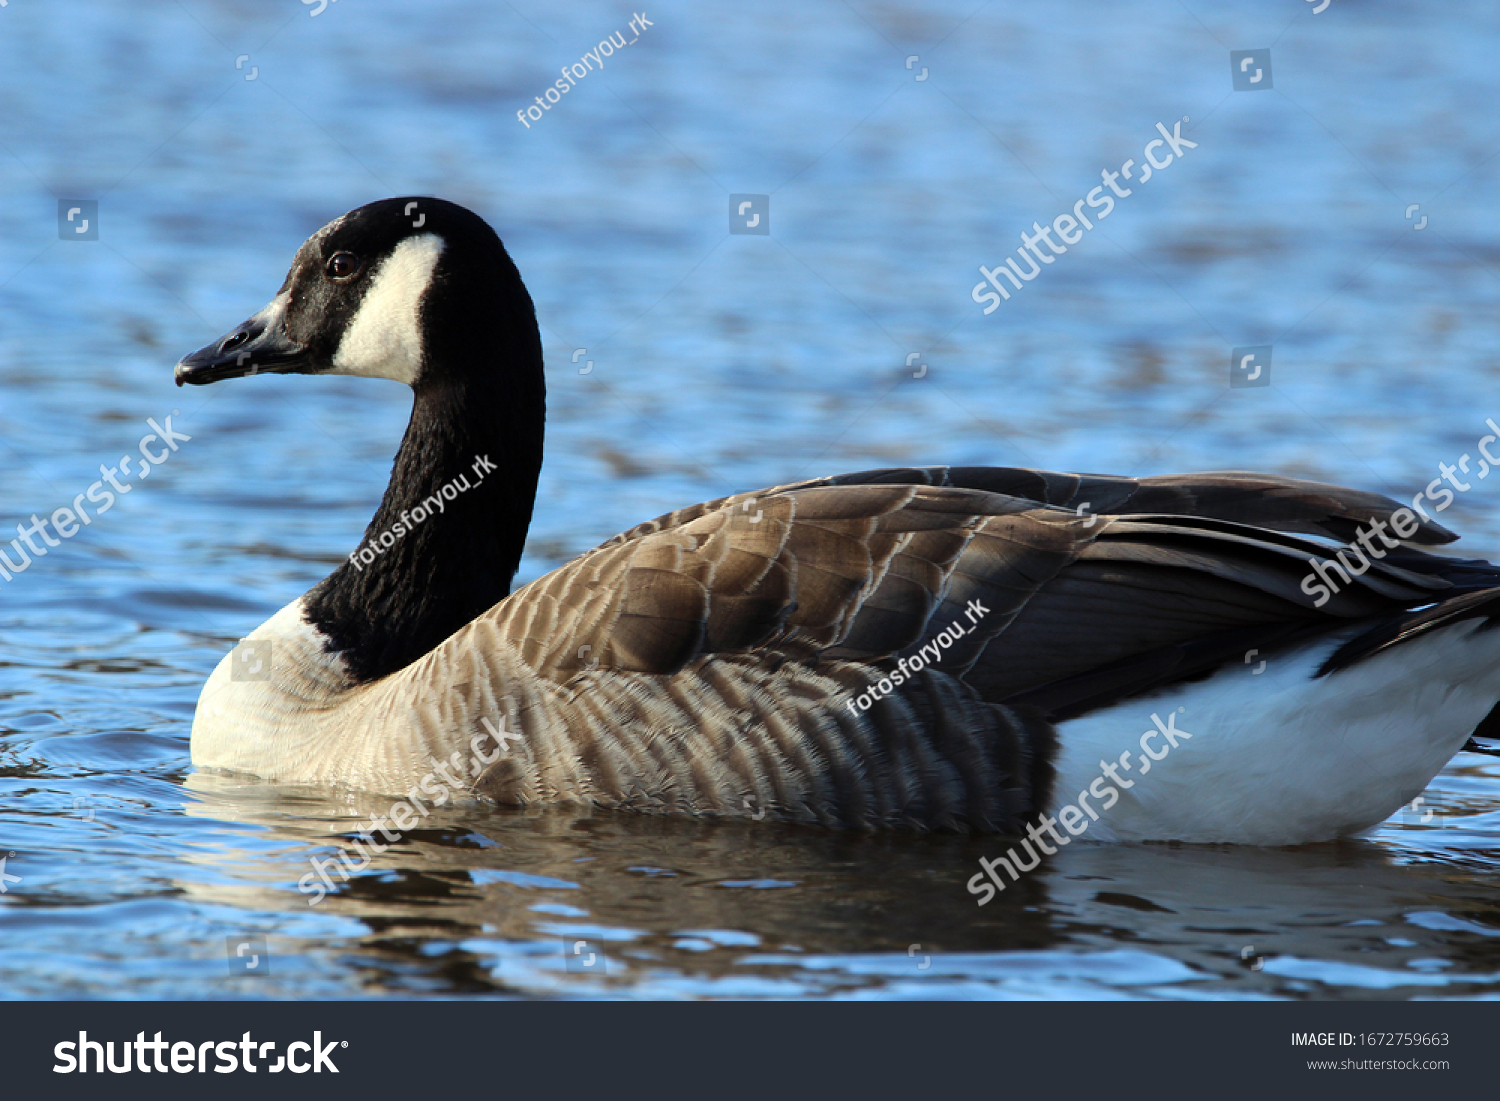 Canadian goose on a large lake